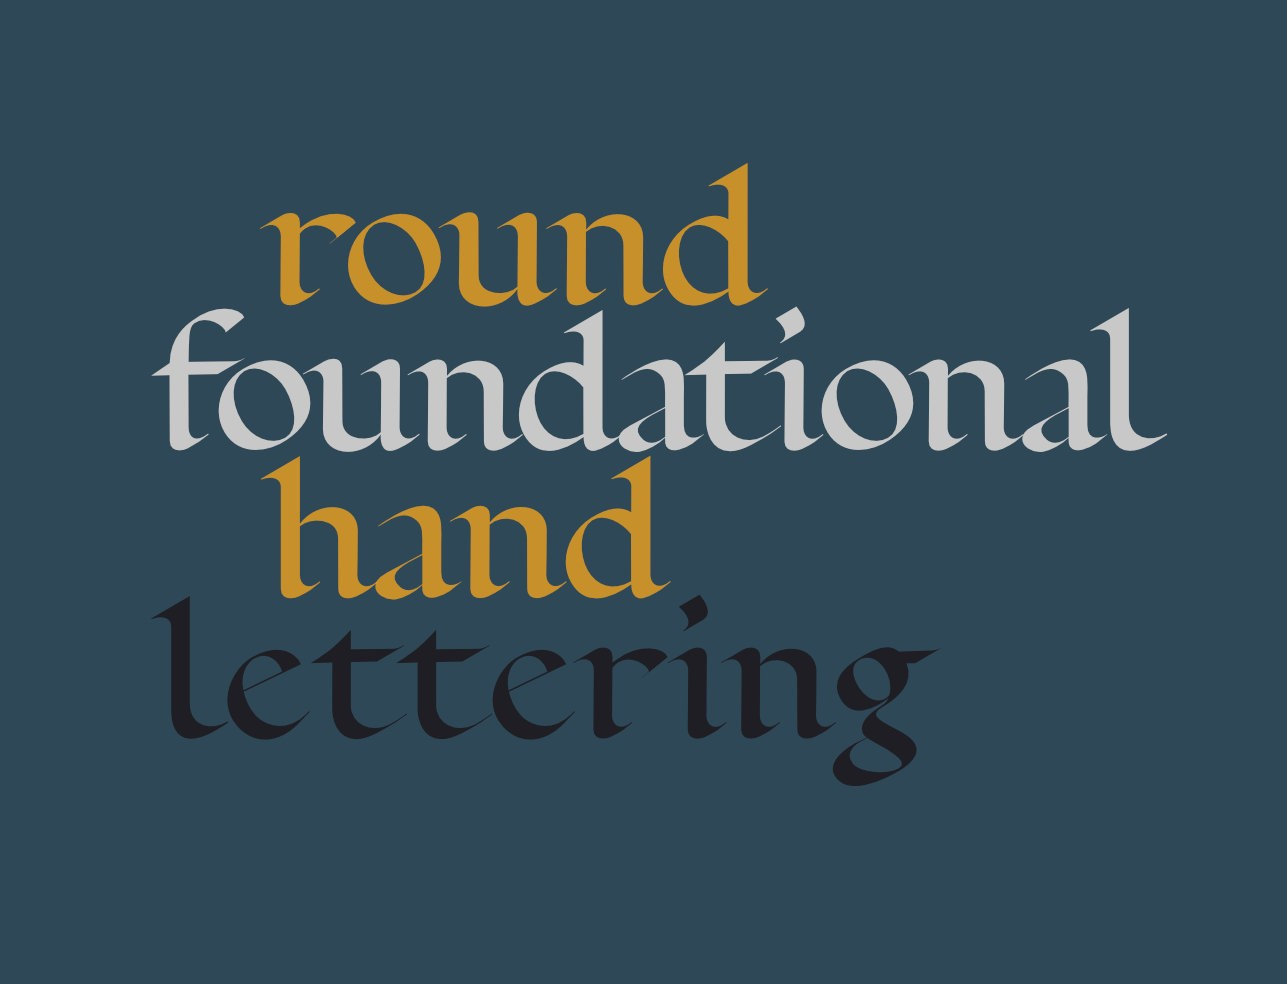 Round foundational hand lettering: a typeface